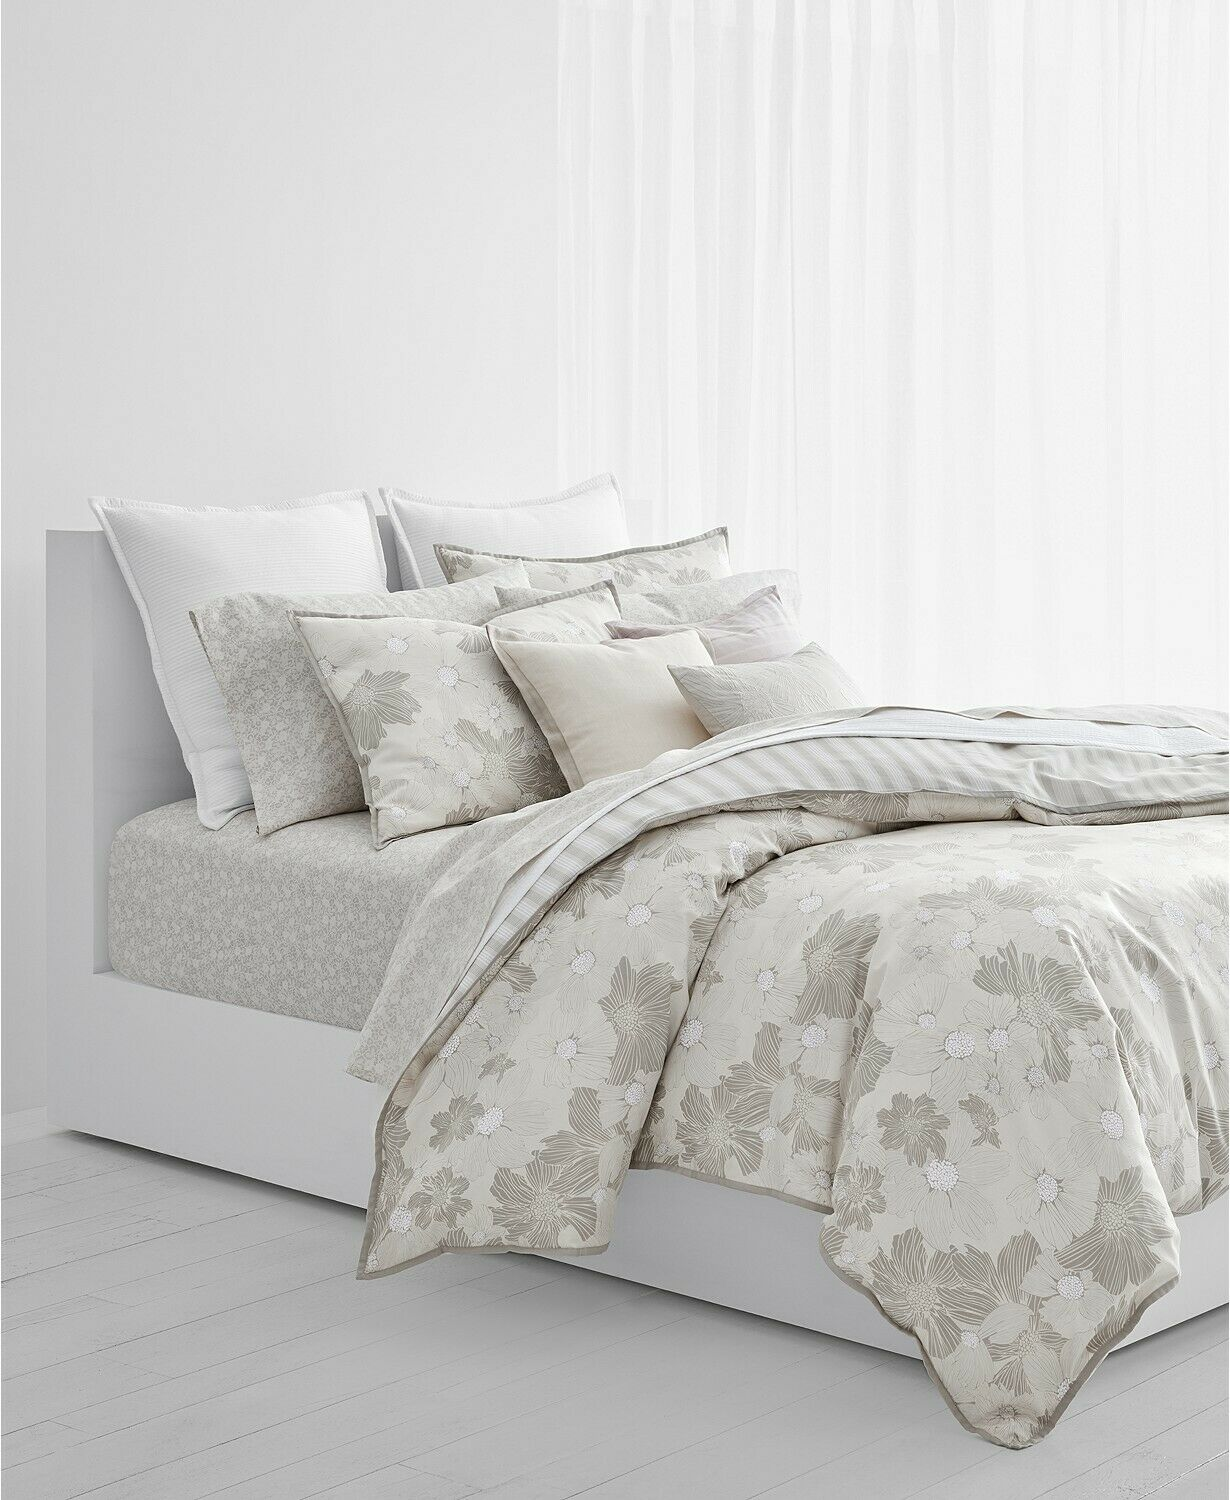 Ralph Lauren Home Allaire FULL QUEEN 3-PC Comforter Set grau Floral Cotton  385N